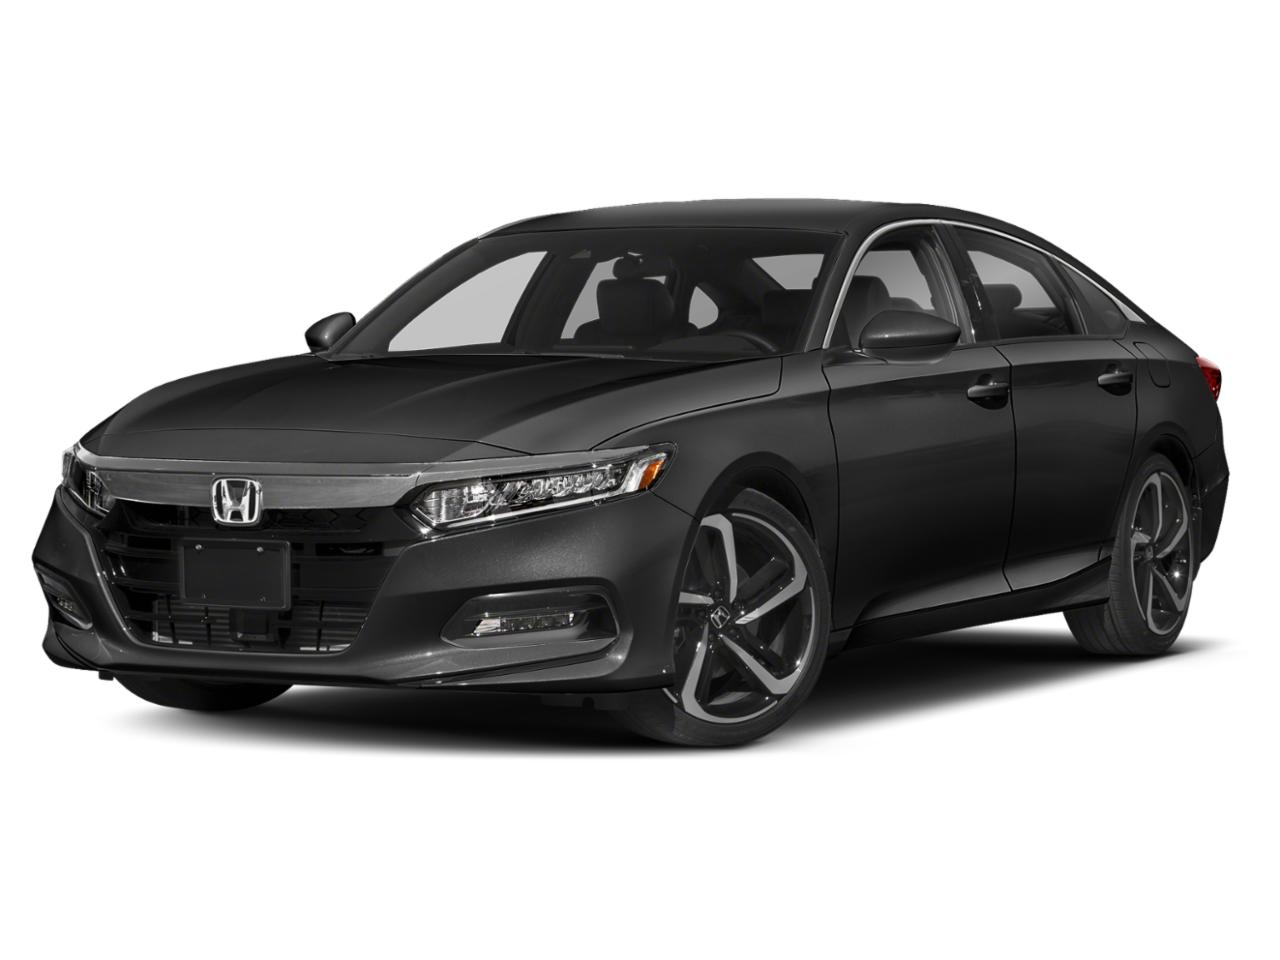 2018 Honda Accord Sedan Vehicle Photo in Bowie, MD 20716